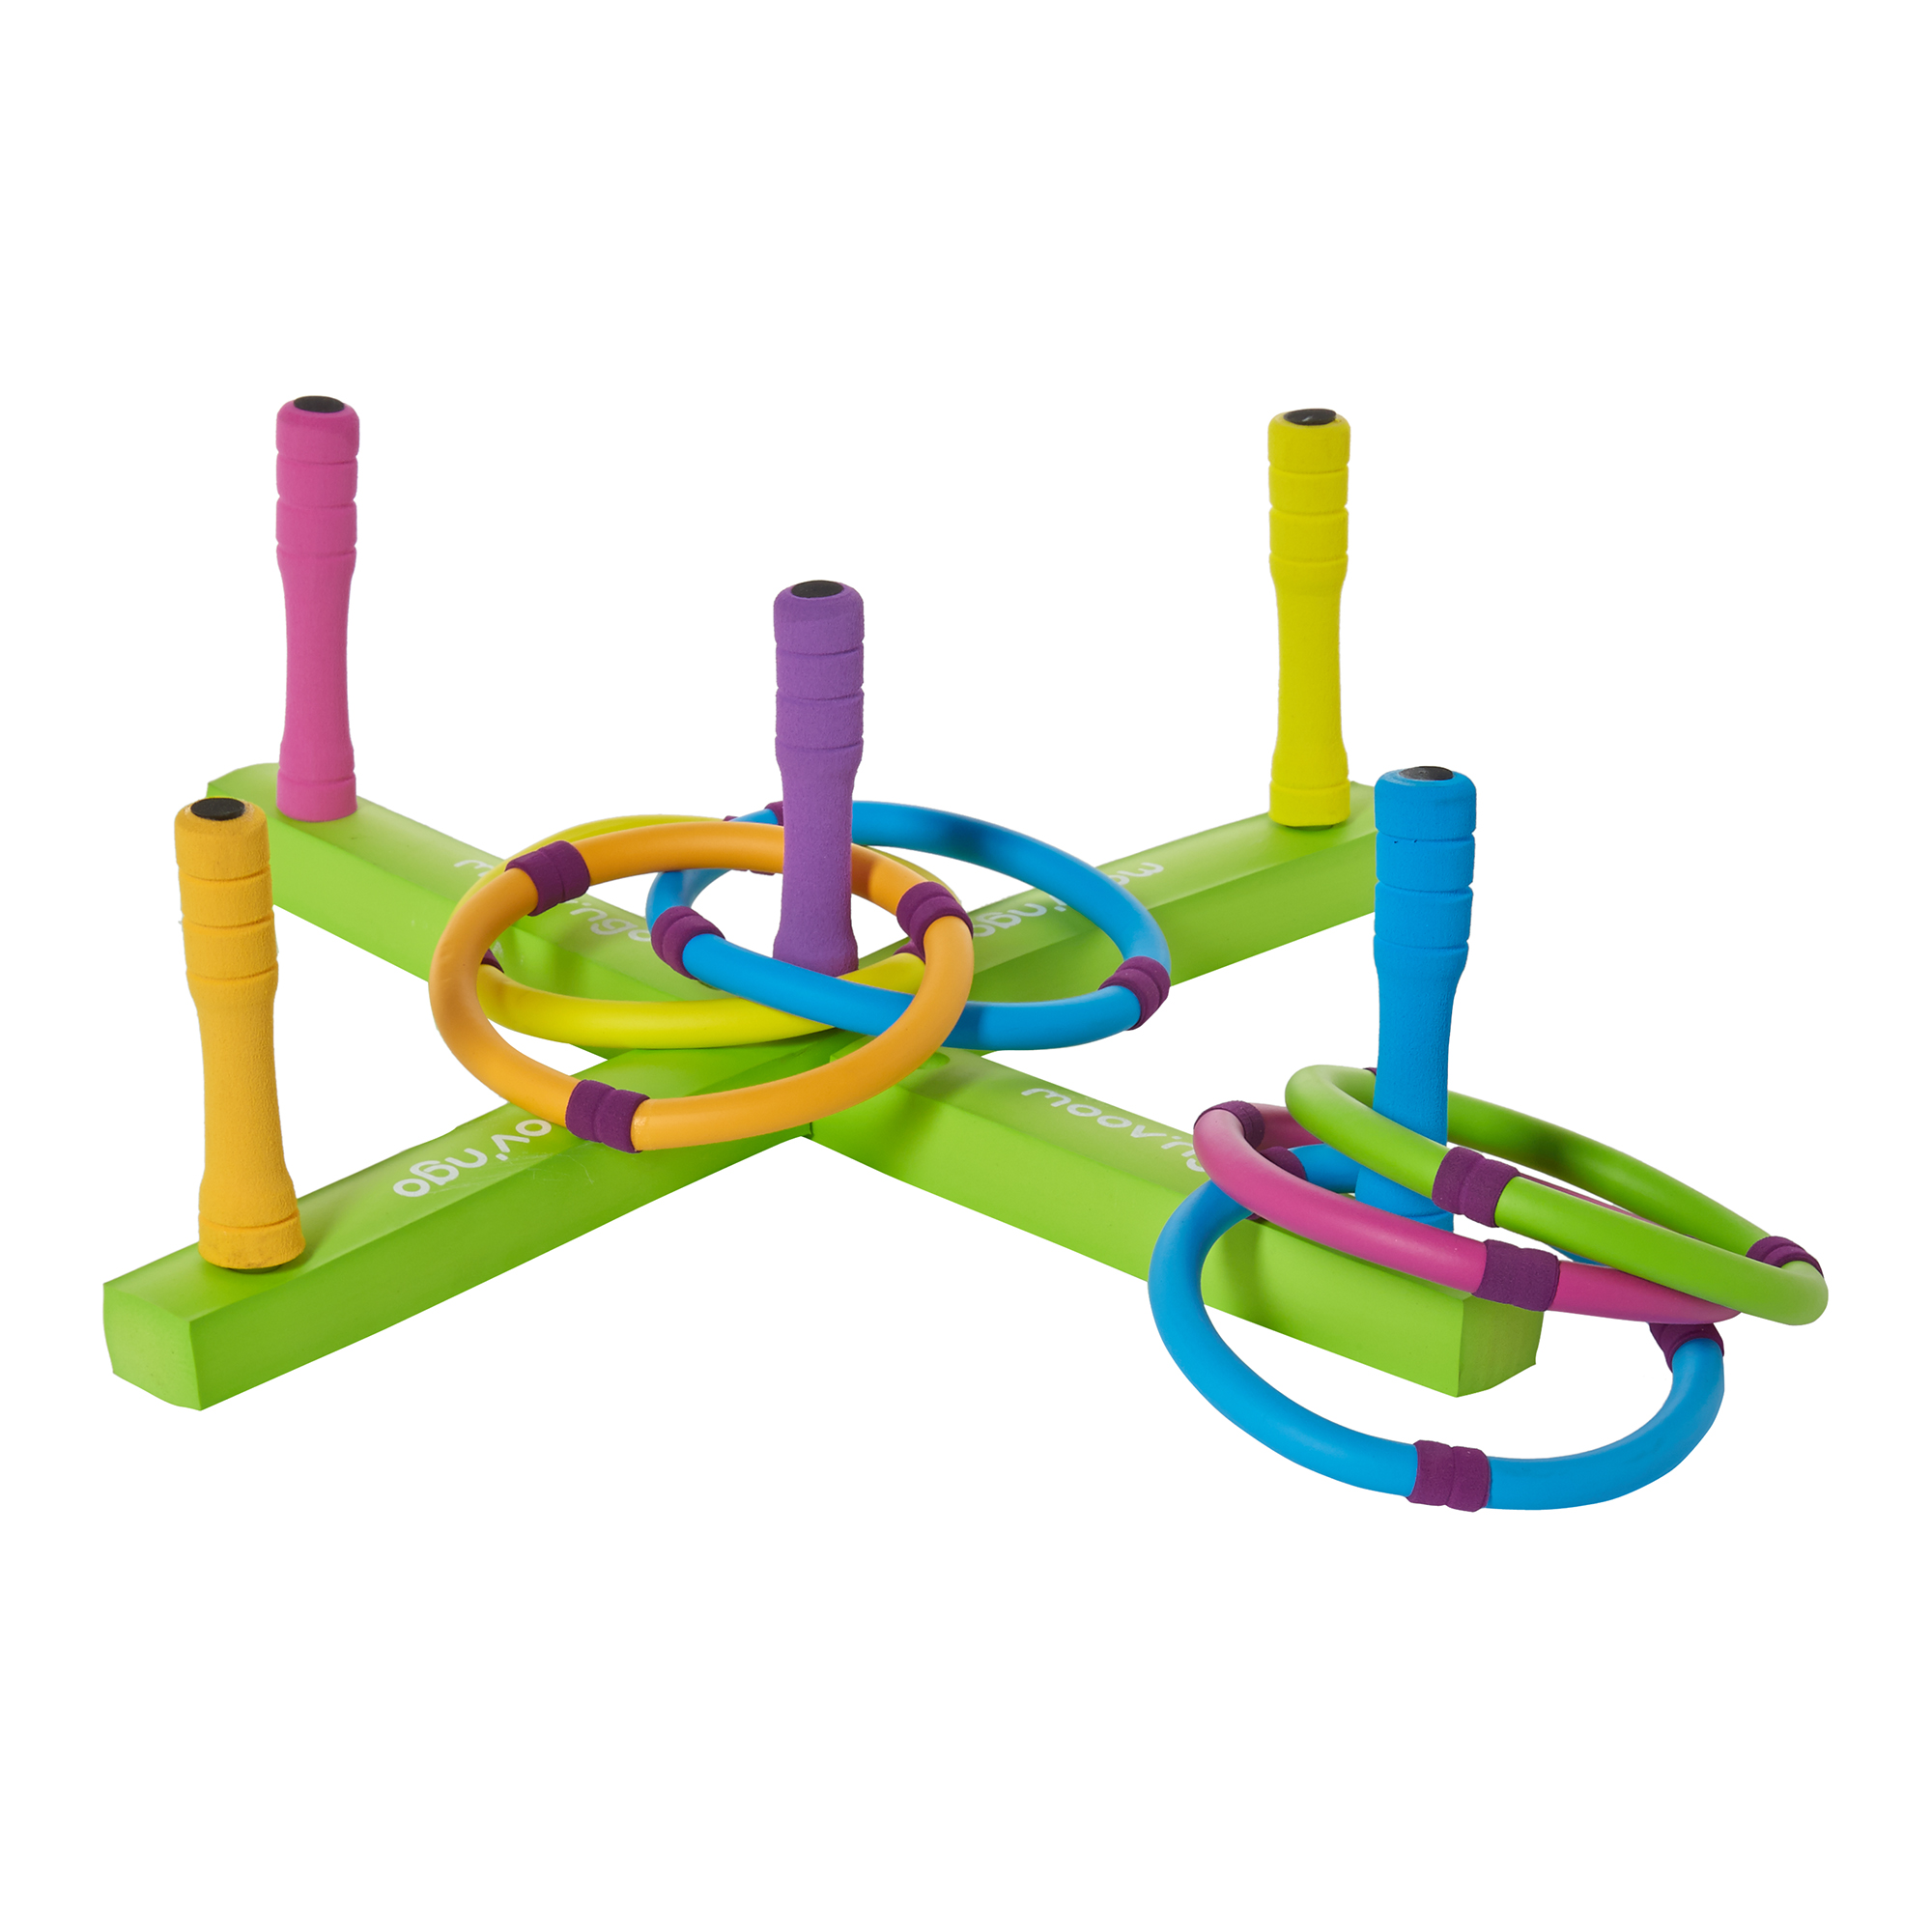 Moov'ngo Foam Ring Games